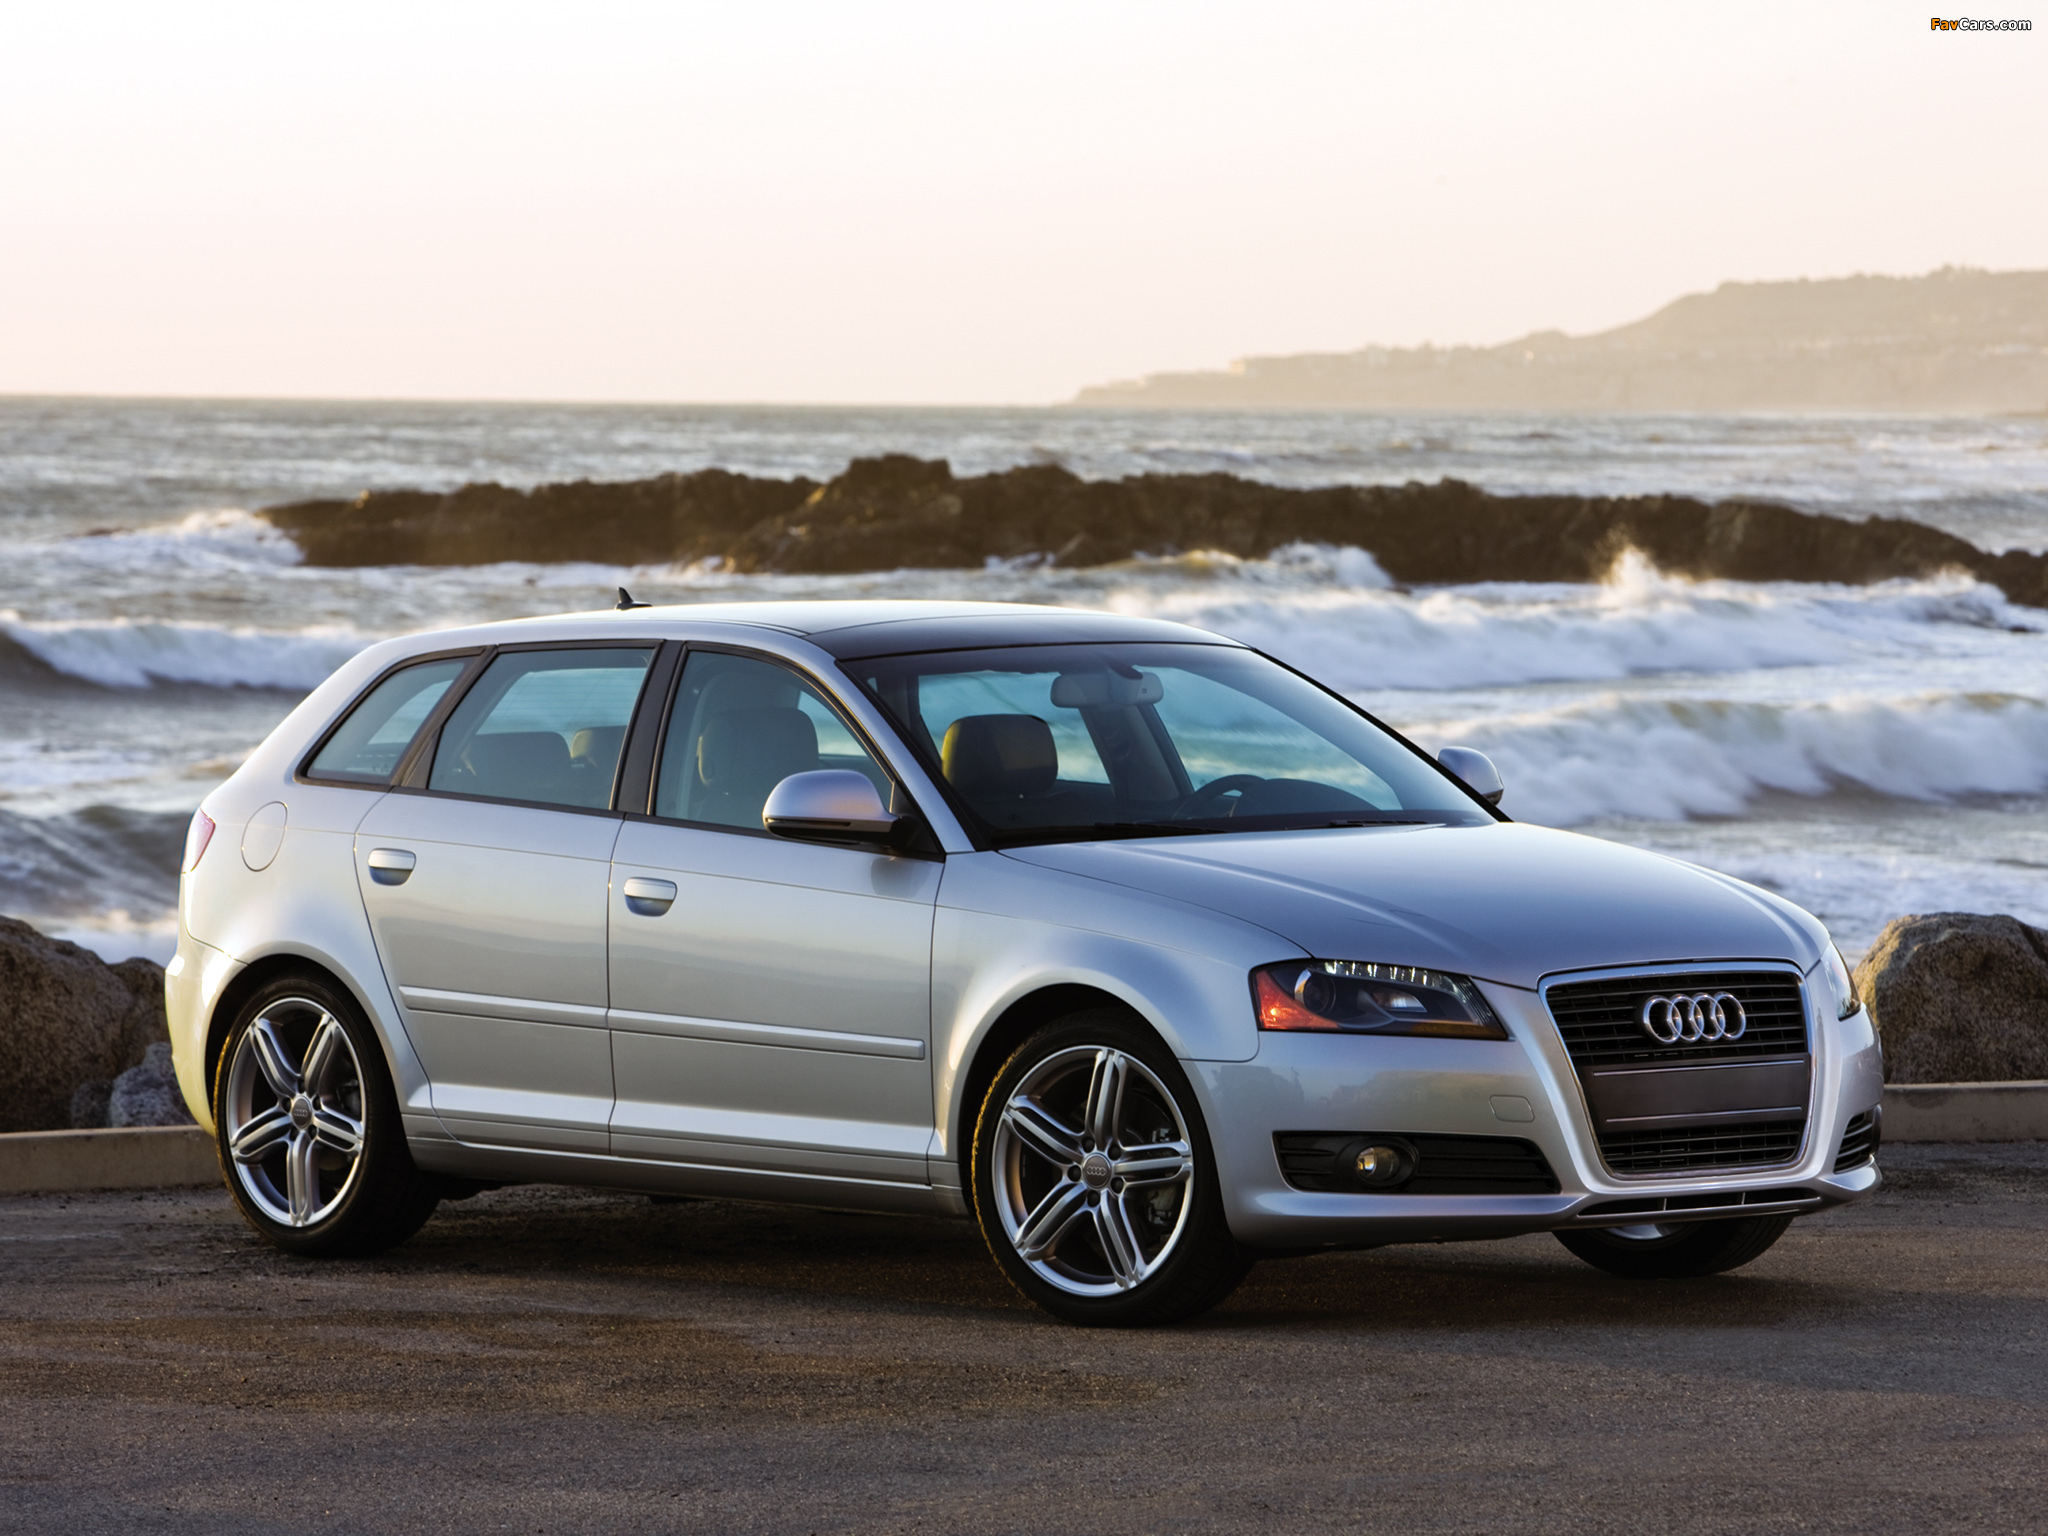 audi a3 sportback 2 0t us spec 8pa 2008 2010 wallpapers. Black Bedroom Furniture Sets. Home Design Ideas